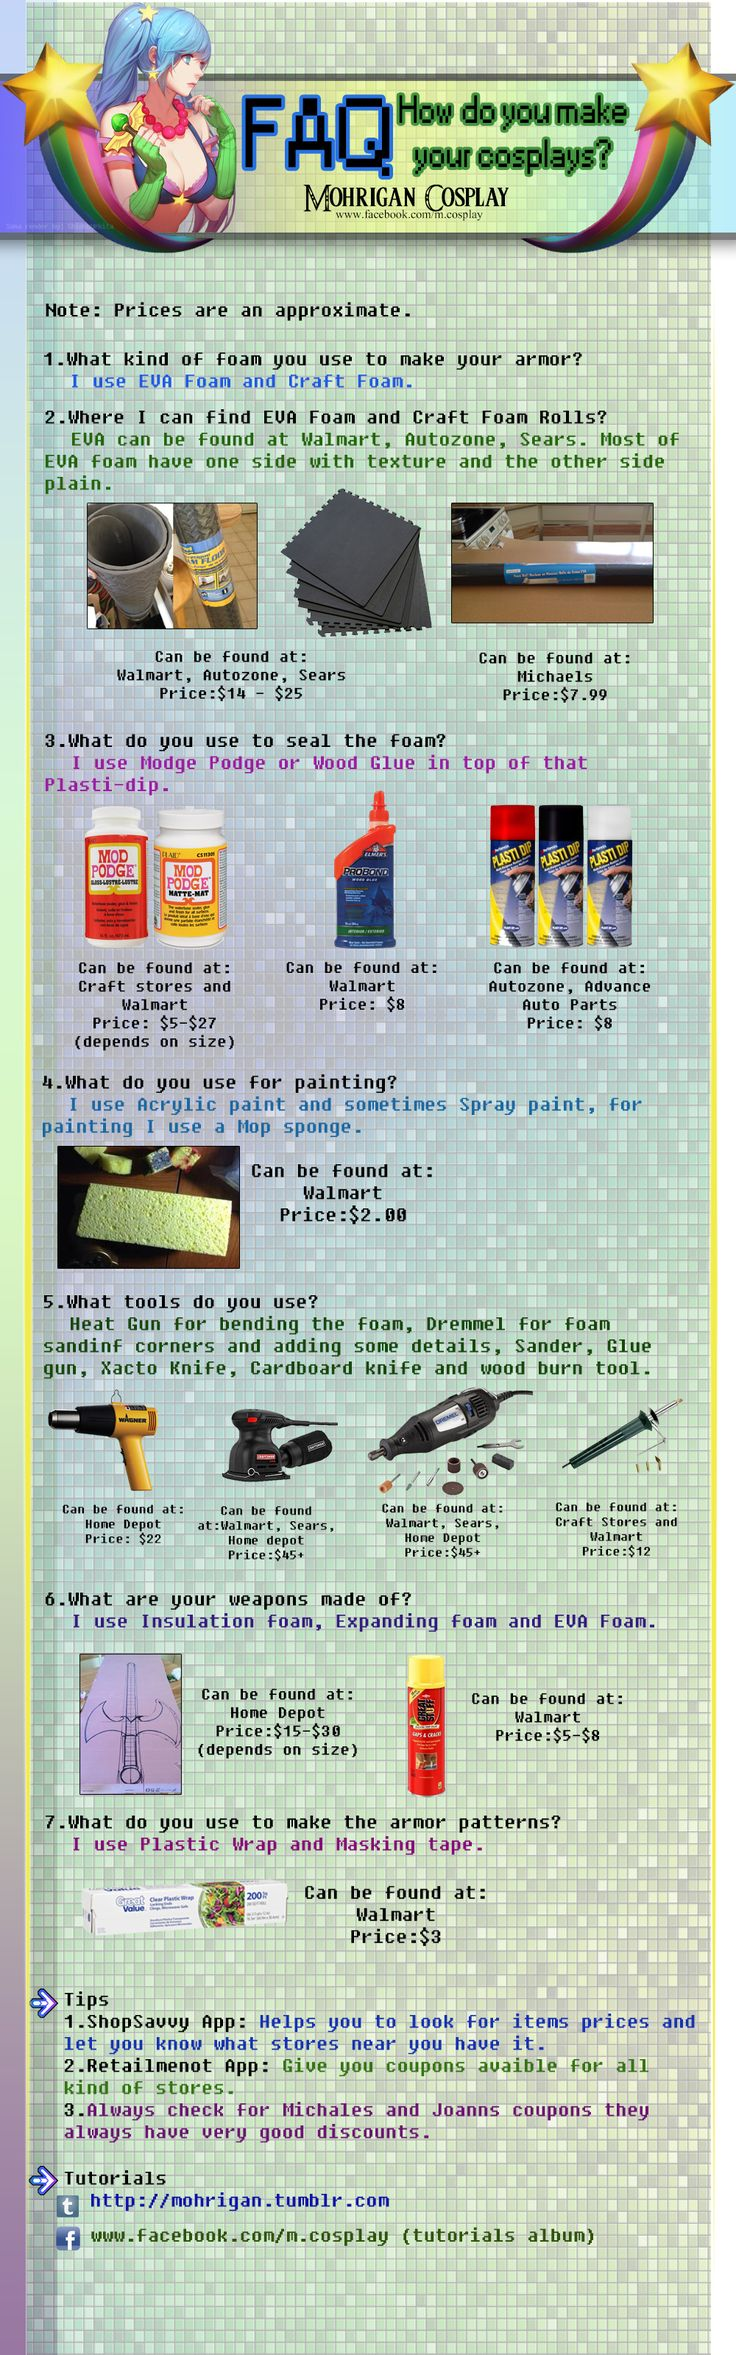 FAQ  Hope this is helpful! For full View click here: http://puu.sh/aOGUn/dded1dbaa5.jpg